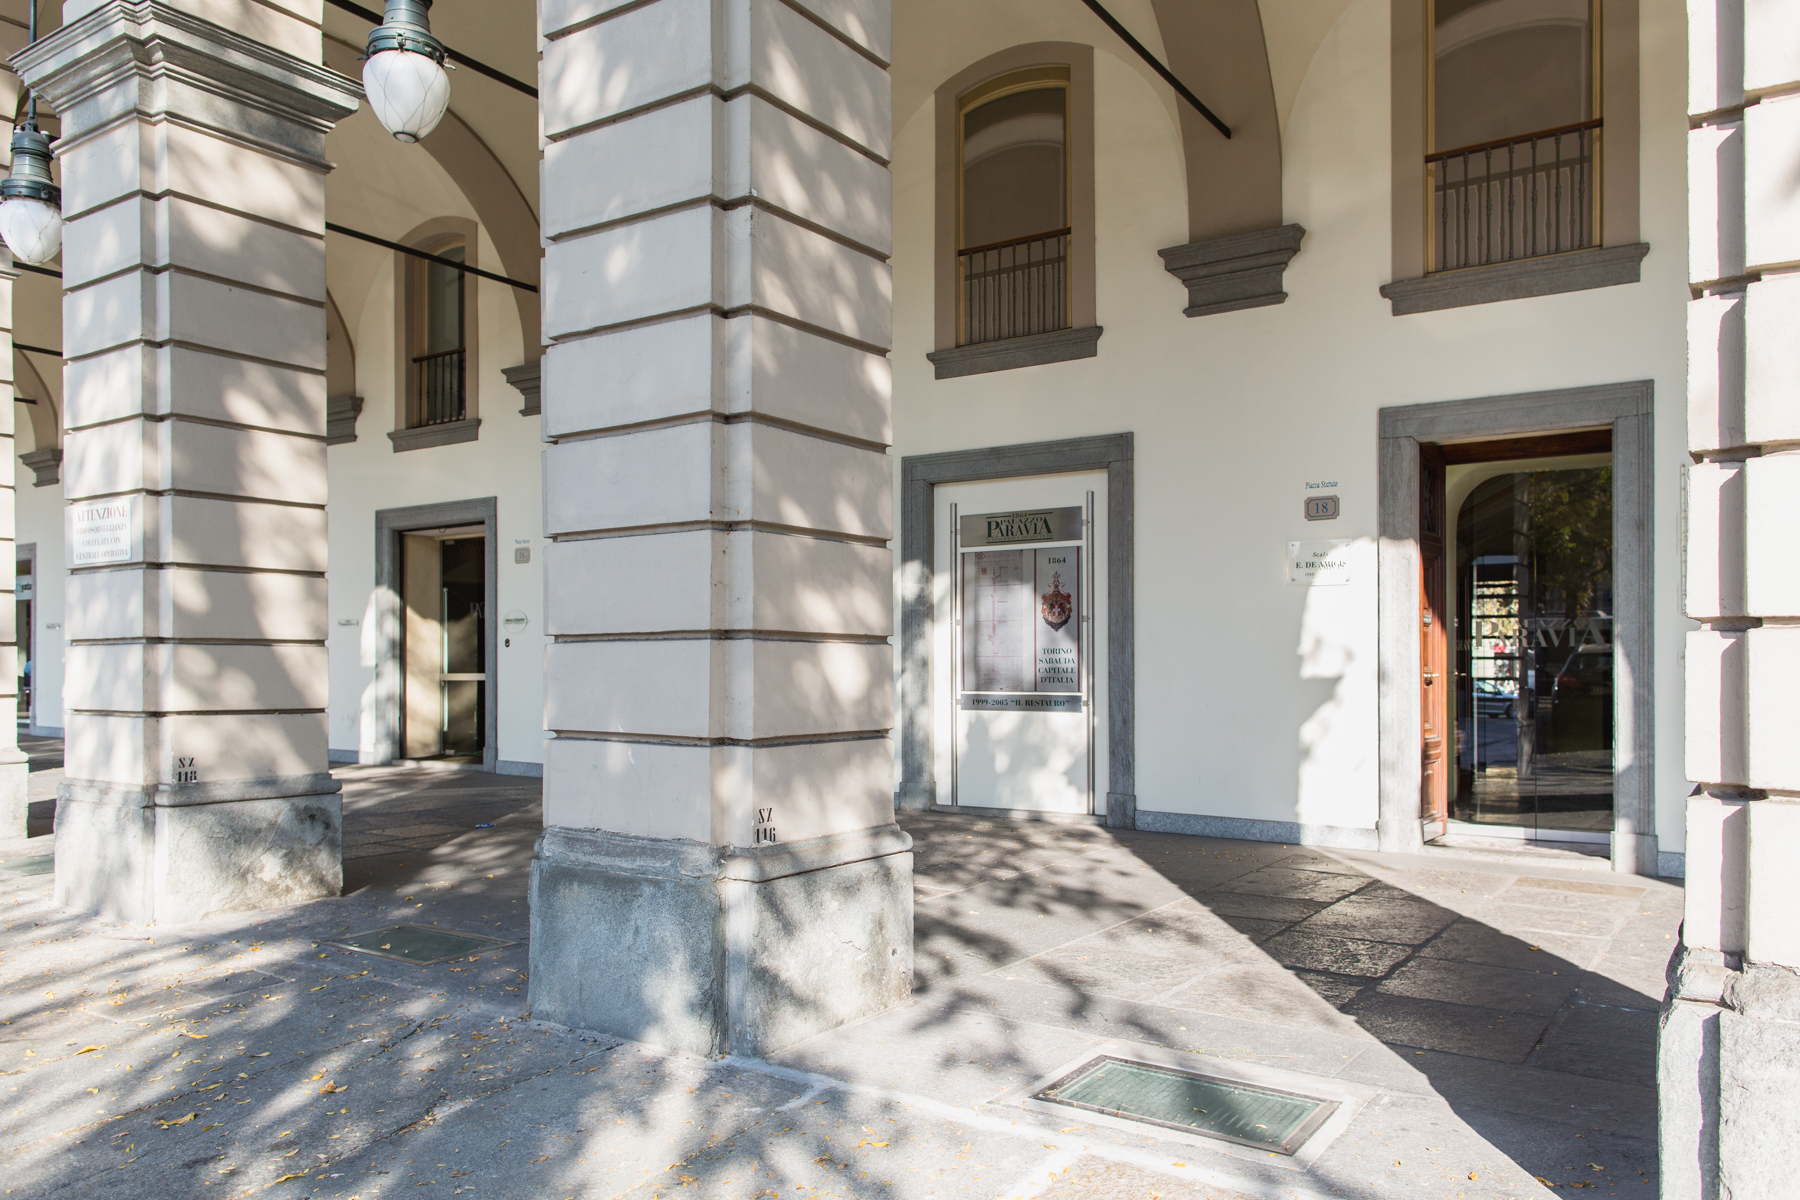 Additional photo for property listing at Prestigius Office in Palazzo Paravia Piazza Statuto Turin, Turin 10122 Italia